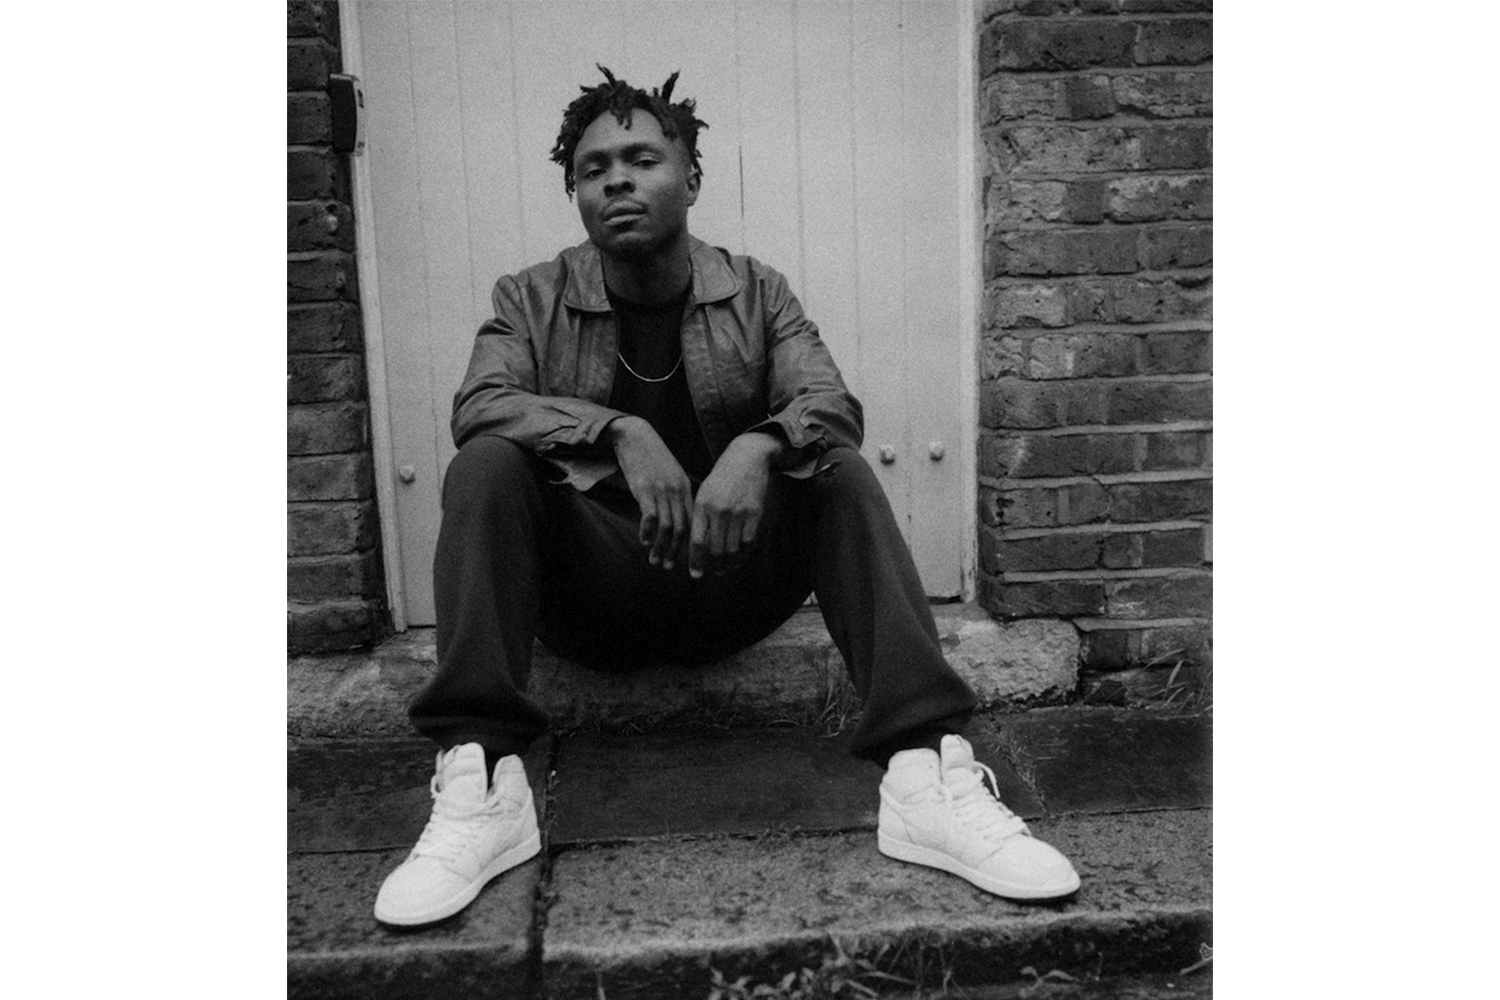 'Azekel Unreleased' EP Release Stream Interview listen now spotify apple music r&b balladry trip hop prince massive attack